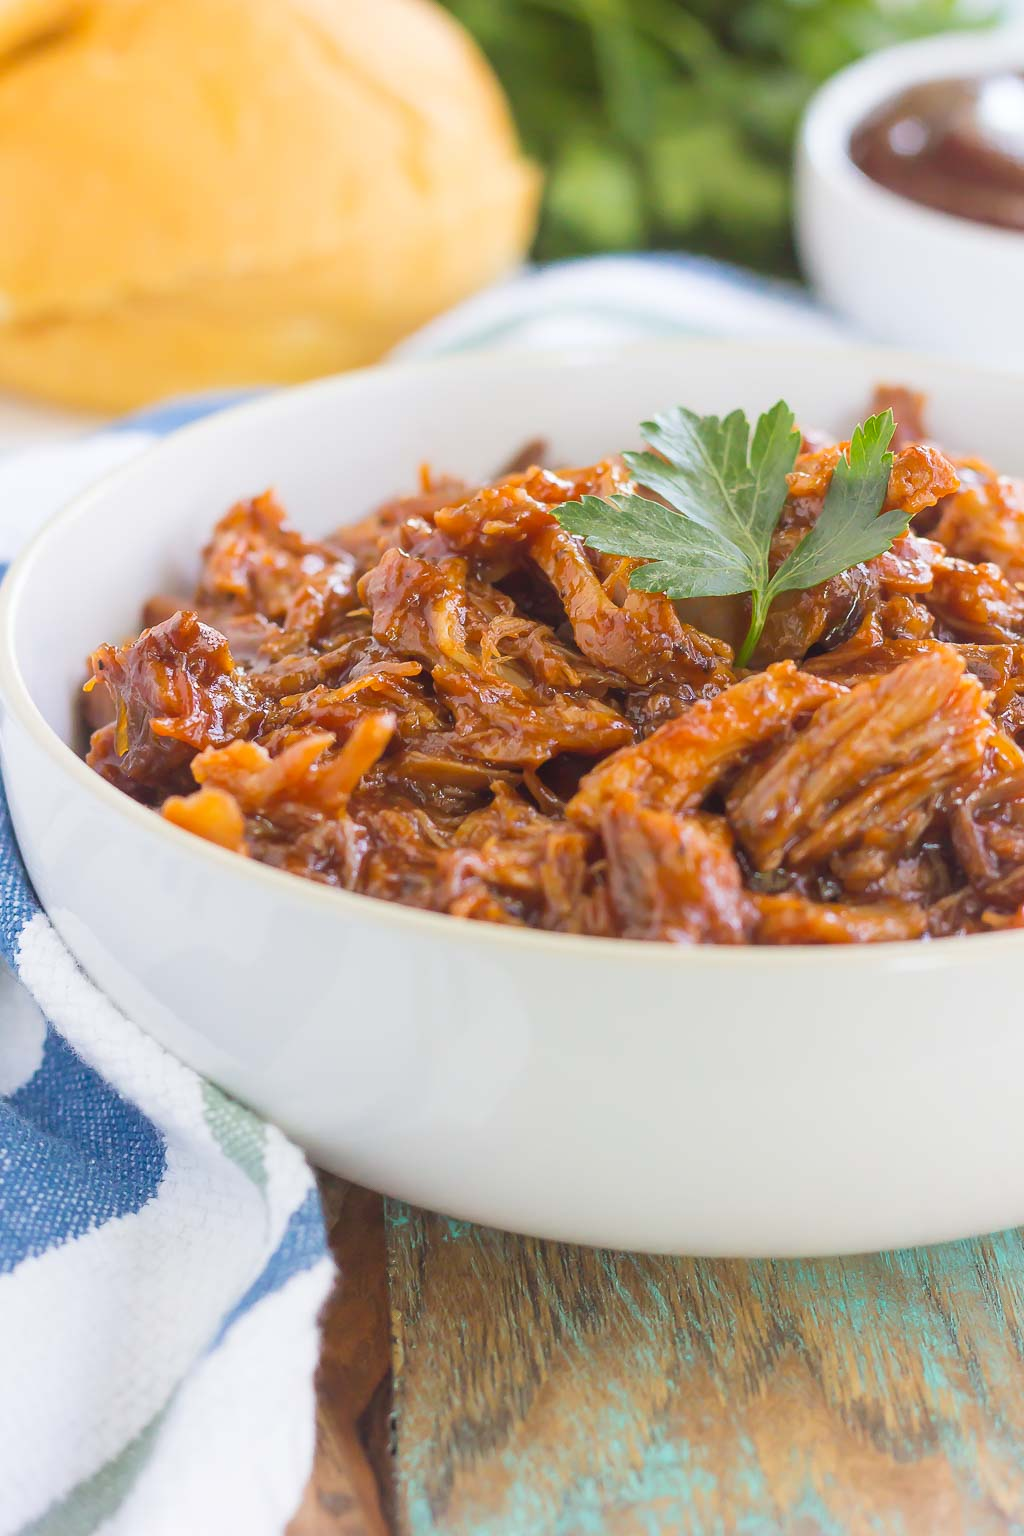 Slow Cooker Barbecue Pulled Pork in white bowl